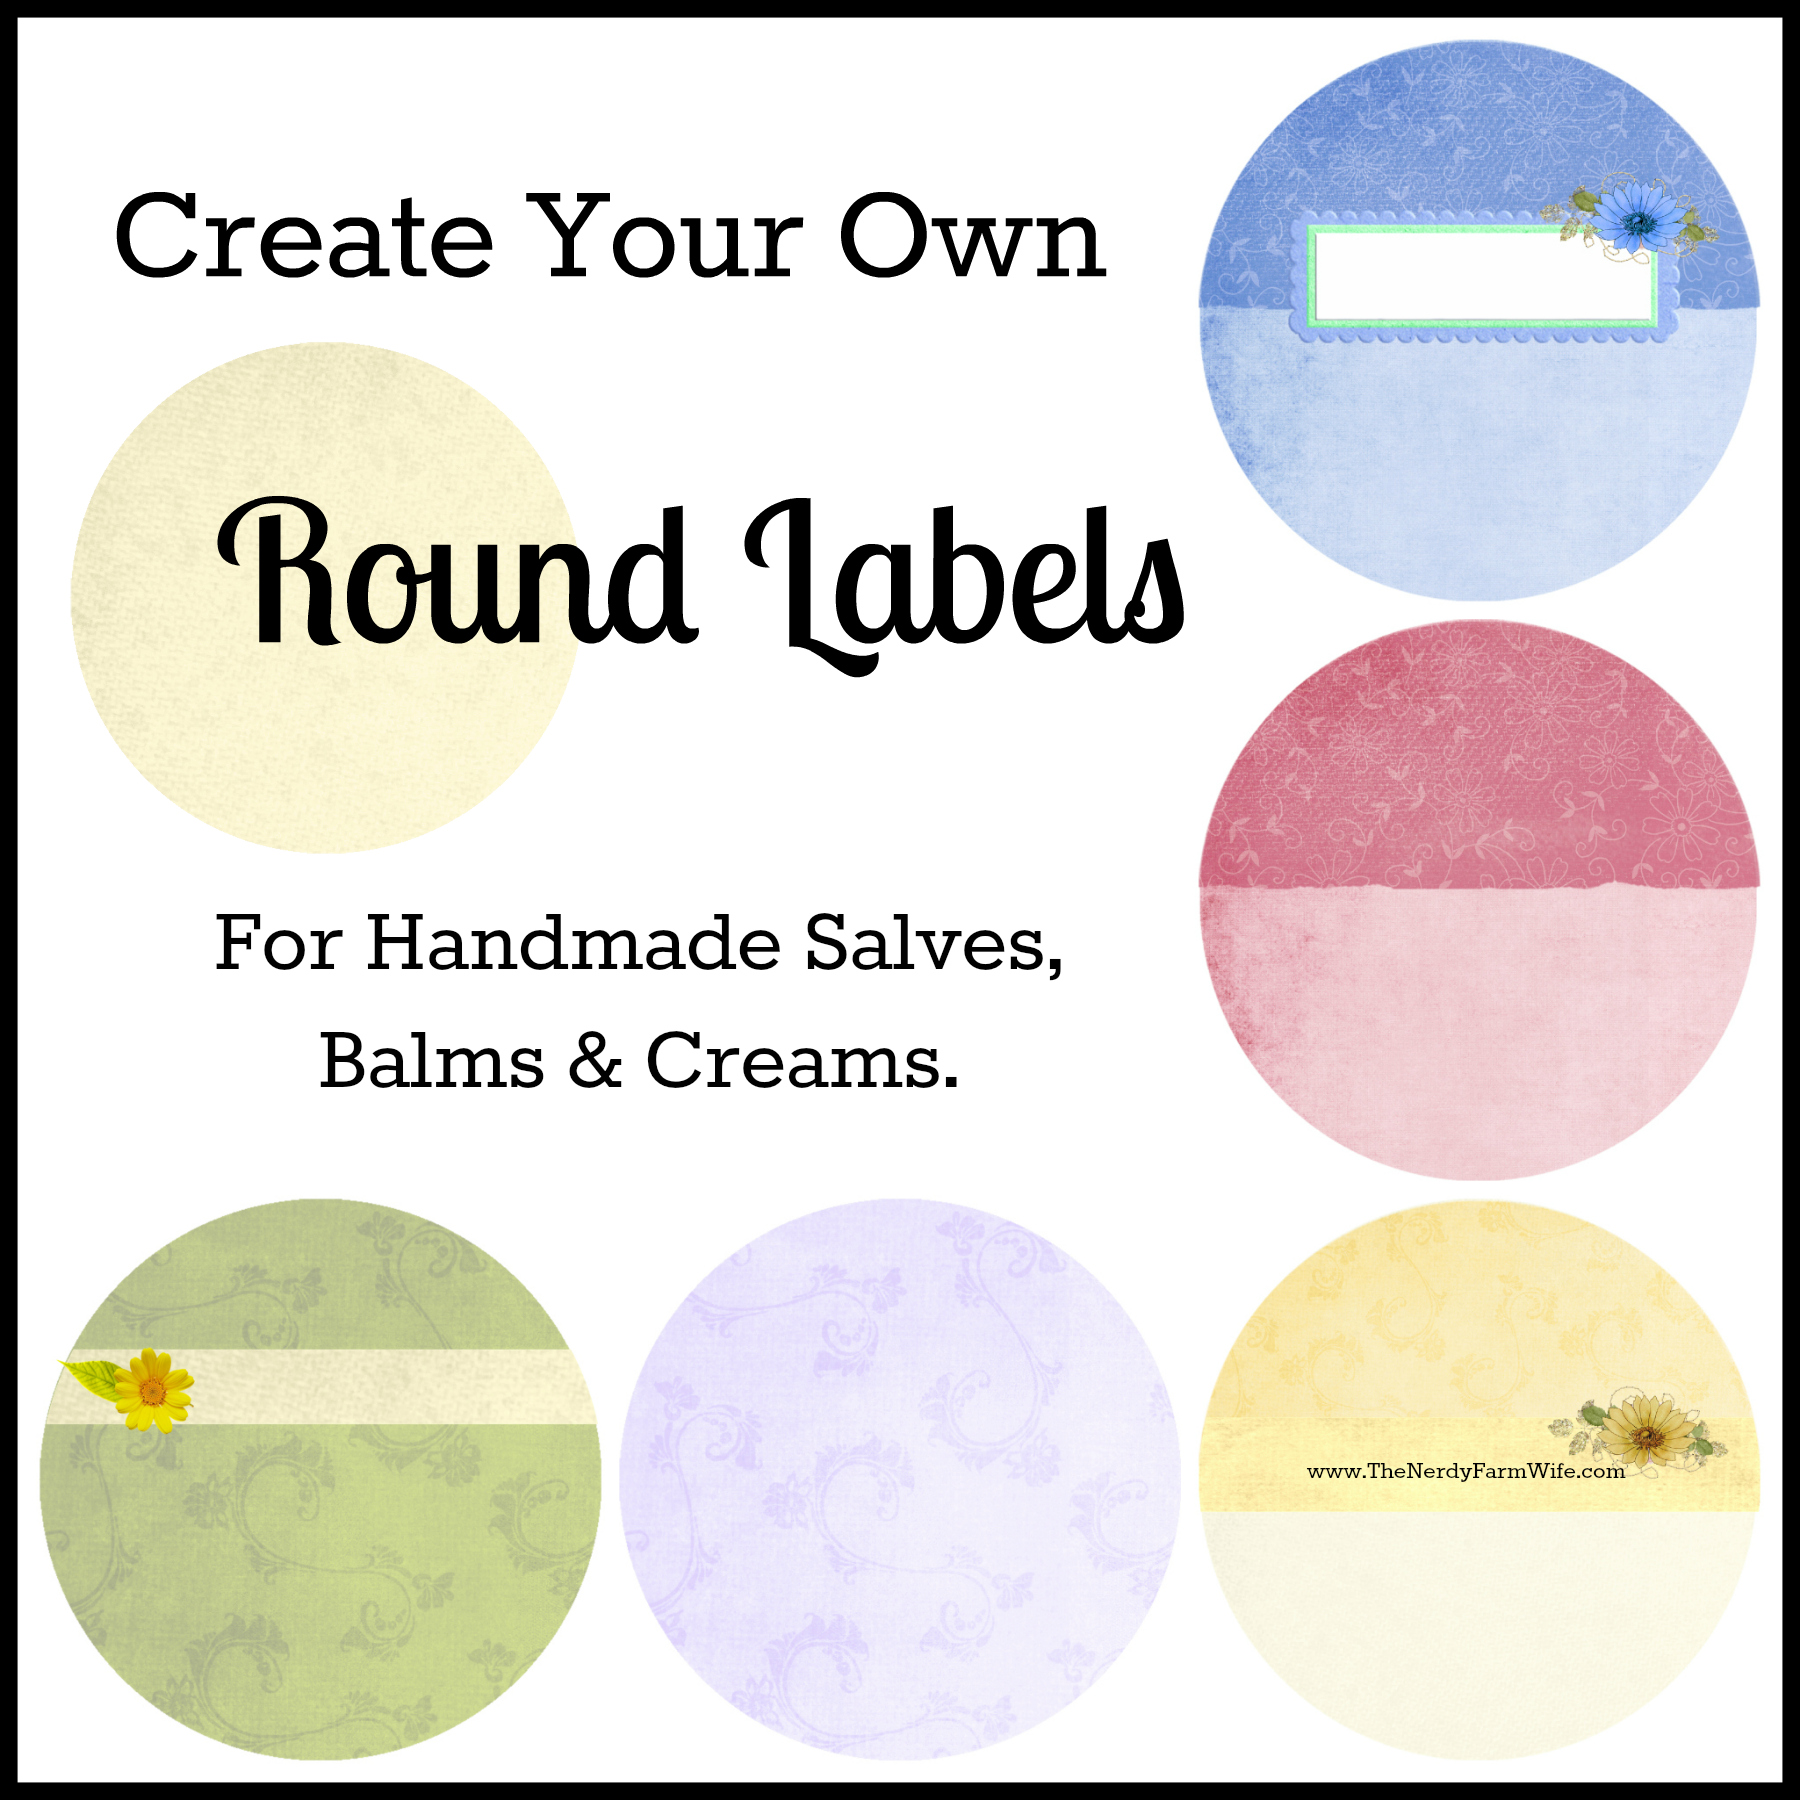 How to: Create Your Own Round Labels